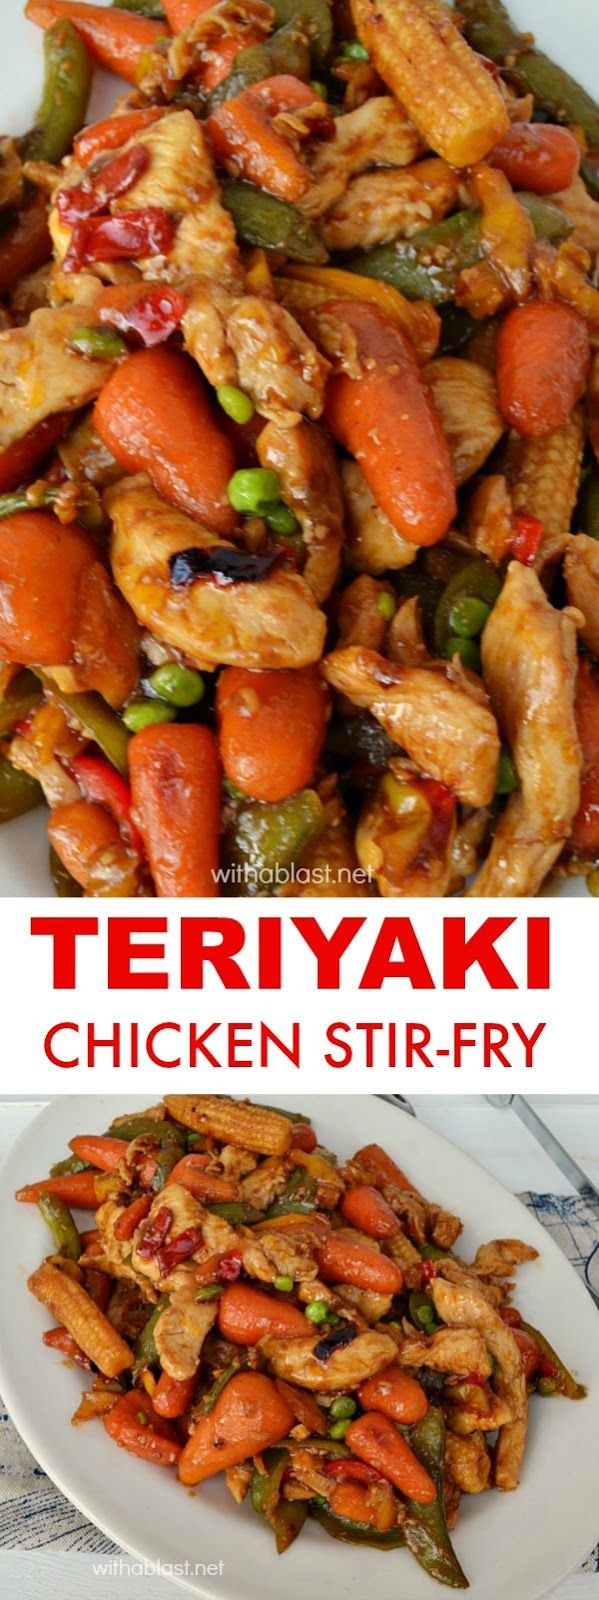 Quick, easy & perfect last minute dinner - Teriyaki Chicken Stir-Fry                                                                                                                                                                                 More